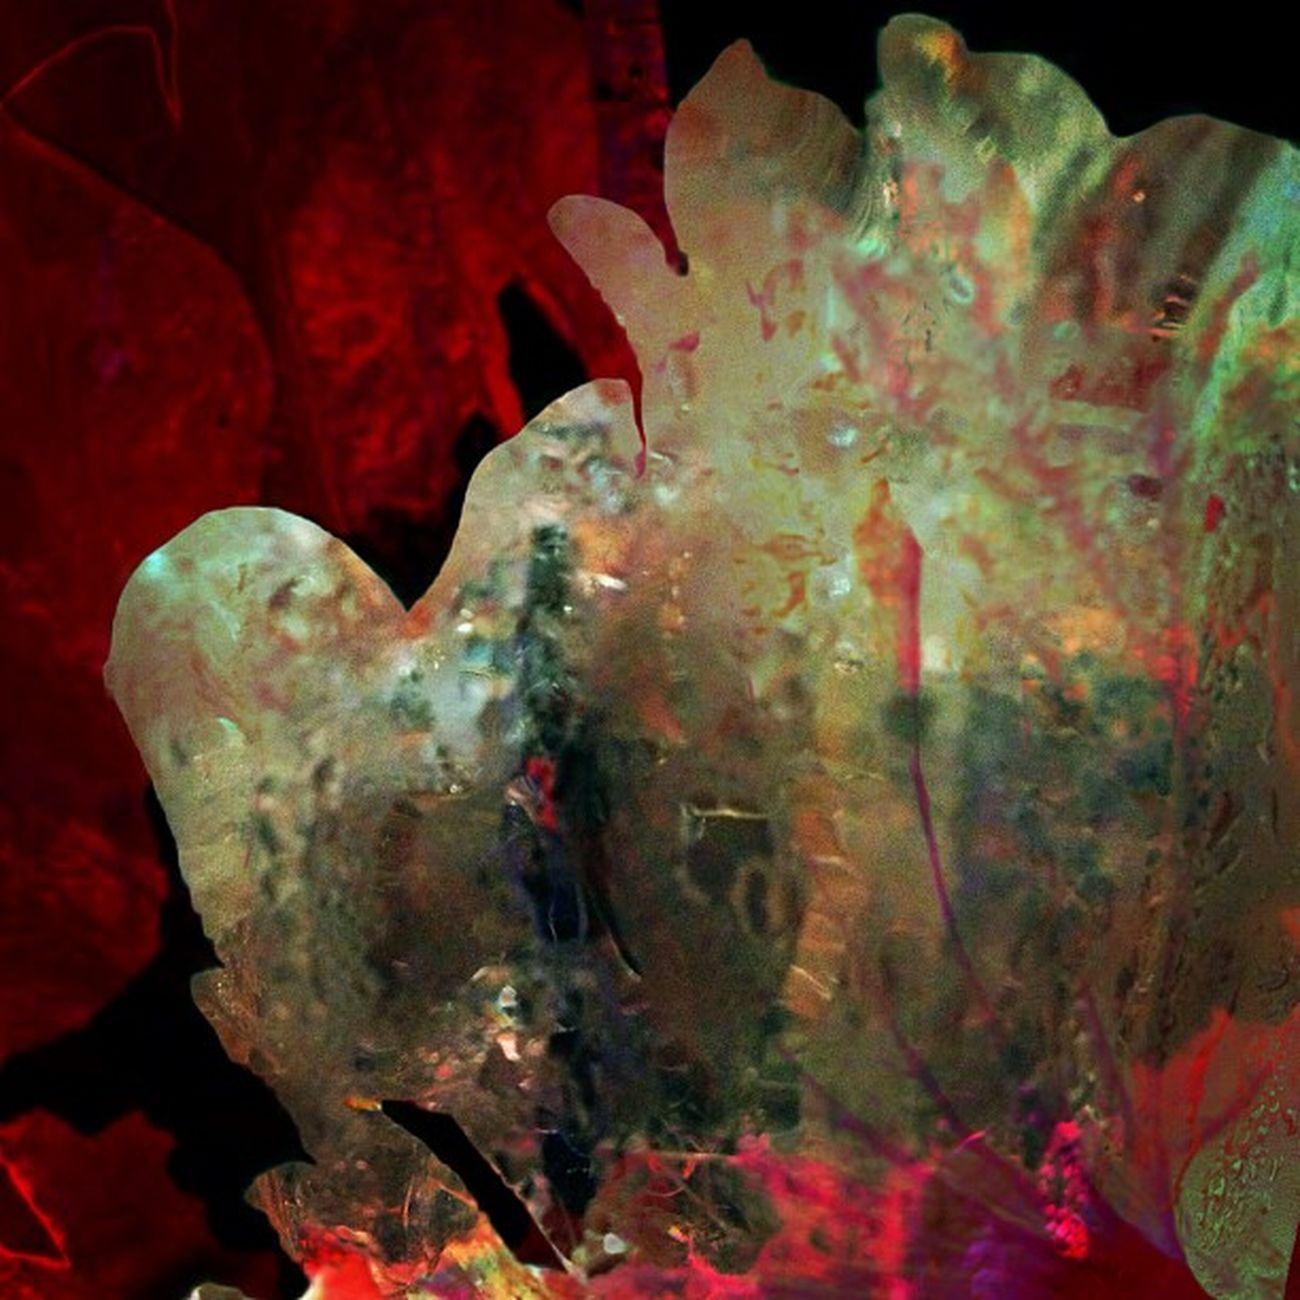 Crystalline Formations (3 of 3) Instaabstract Ig_captures Edit Happycolortrip Abstracto Coloronroids All_shots Dhexpose StayABSTRACT Ace_ Abstractart Deadlydivas Gang_family Ig_one Editjunky Icatching Mobileartistry Femme_elite Instauno Weareinheaven Igsg You_nique_edits Bd Mi55flowerz Abstracters_anonymous Abstract_buff Abstractobsession